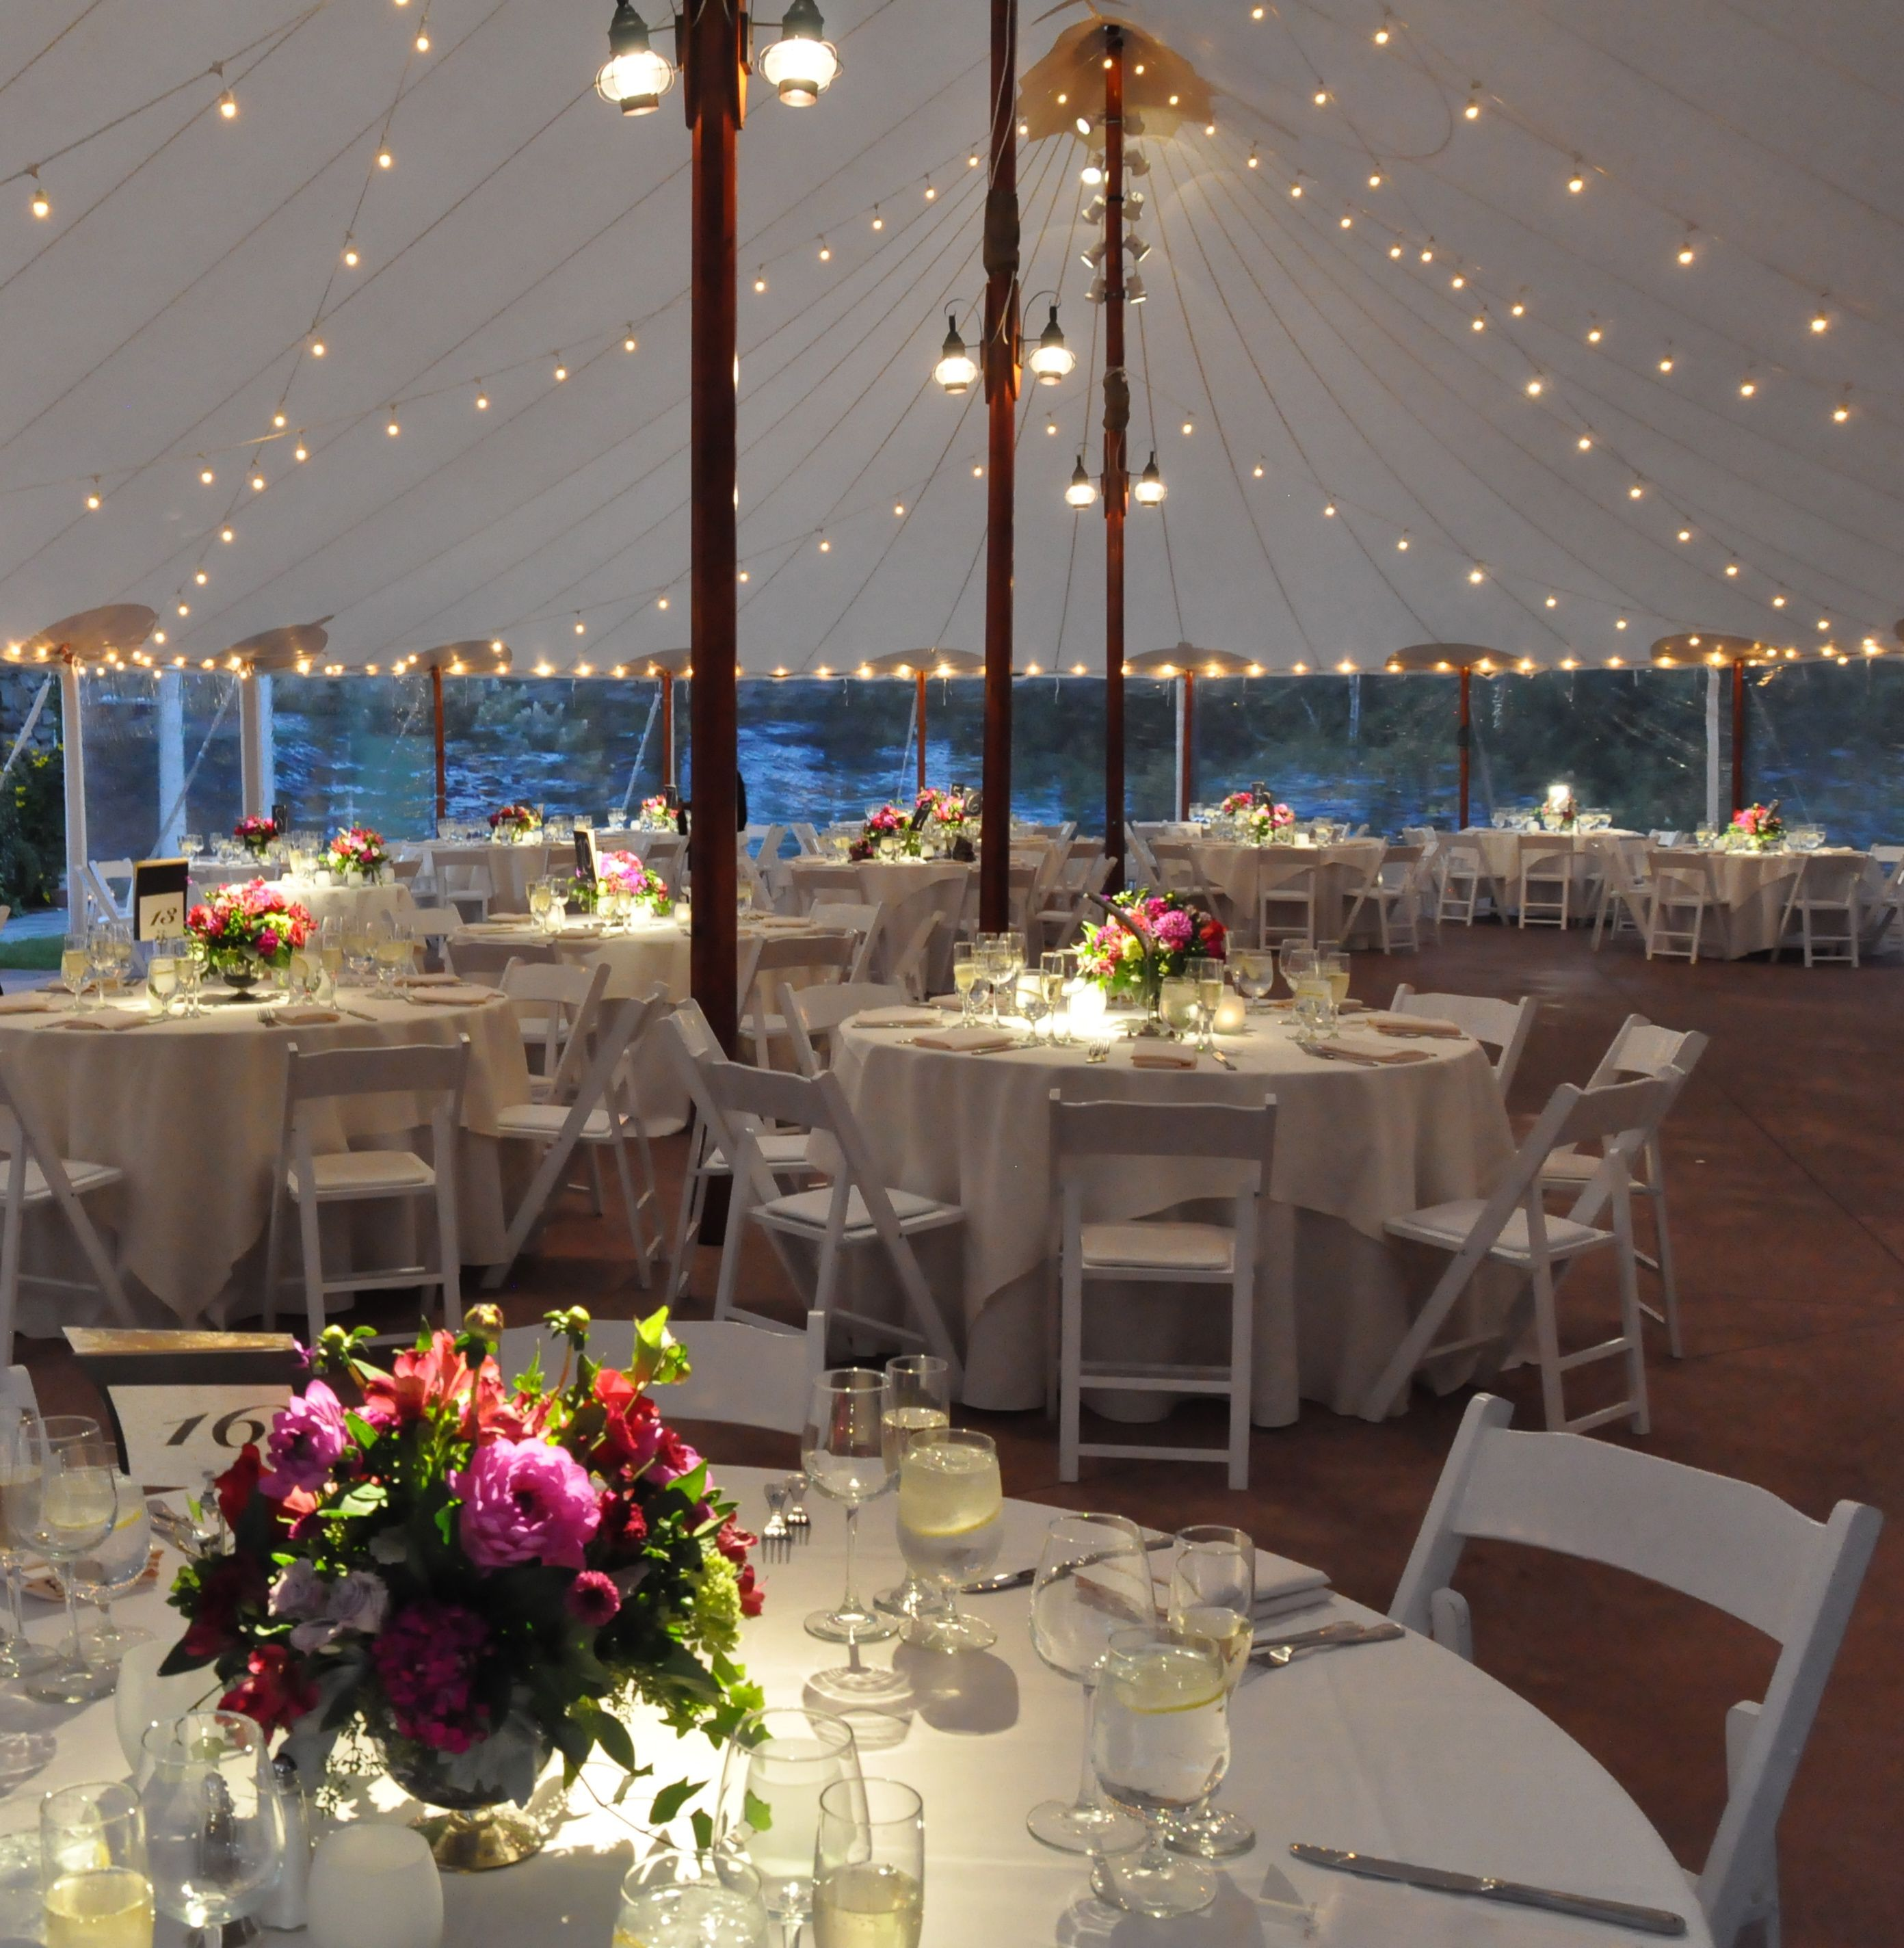 String lighting and pinspots in the Sperry Tent at Willowdale Estate //revprod & String lighting and pinspots in the Sperry Tent at Willowdale ...